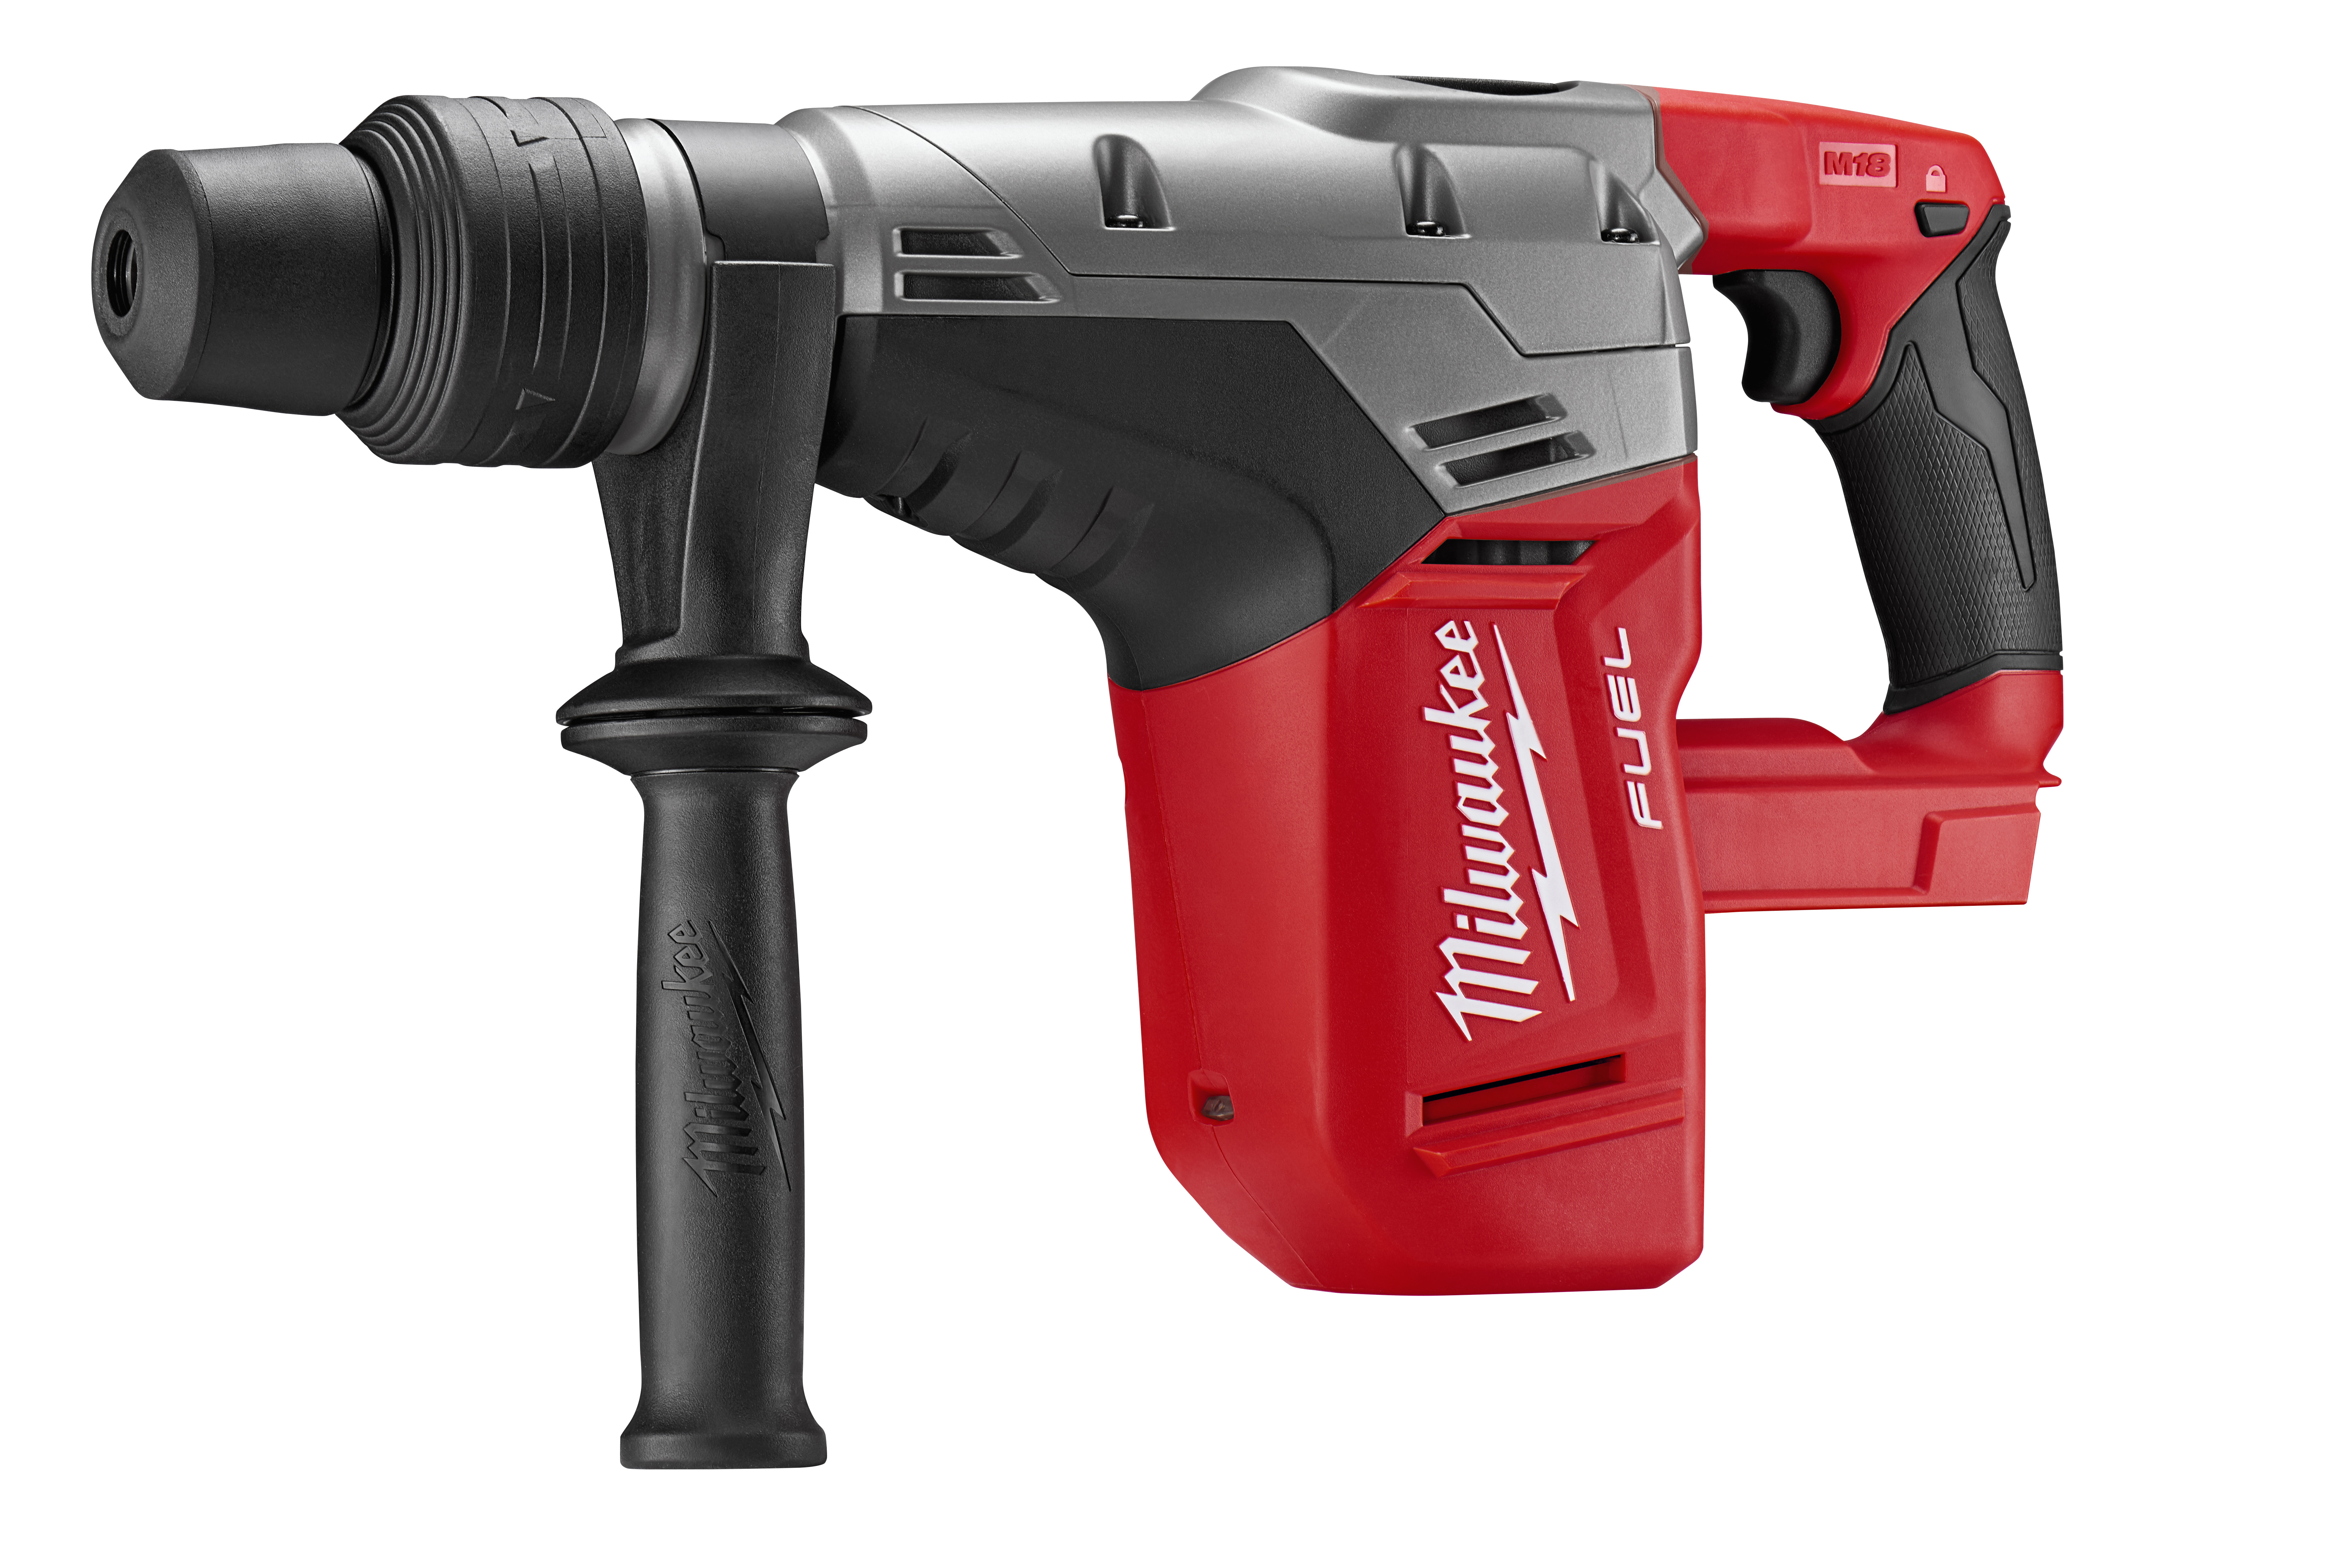 Milwaukee® POWERSTATE™ M18™ M18™ FUEL™ 2717-20 Cordless Rotary Hammer Drill, 1-9/16 in SDS-Max® Chuck, 18 VDC, 0 to 450 rpm No-Load, Lithium-Ion Battery